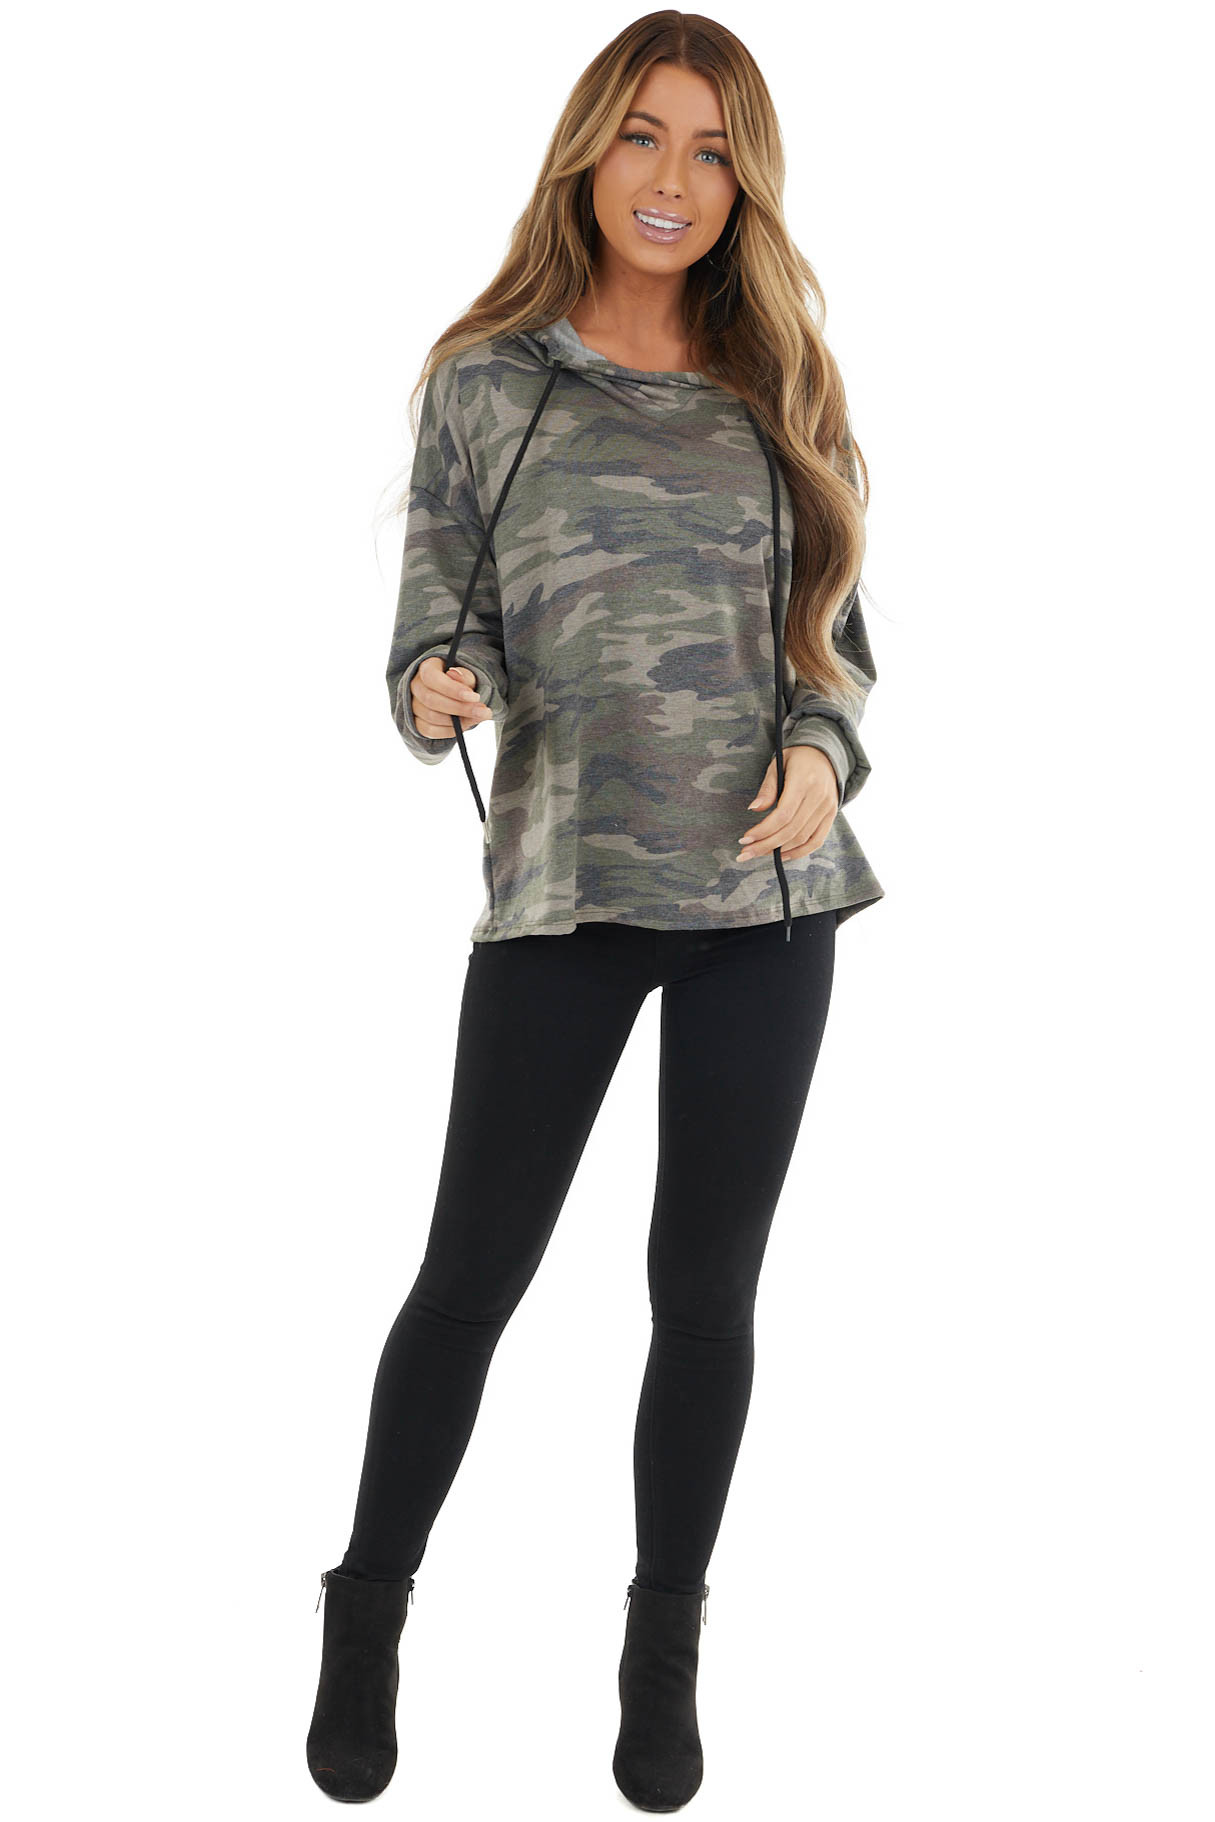 Forest Camo Soft Knit Long Sleeve Hoodie with Drawstrings